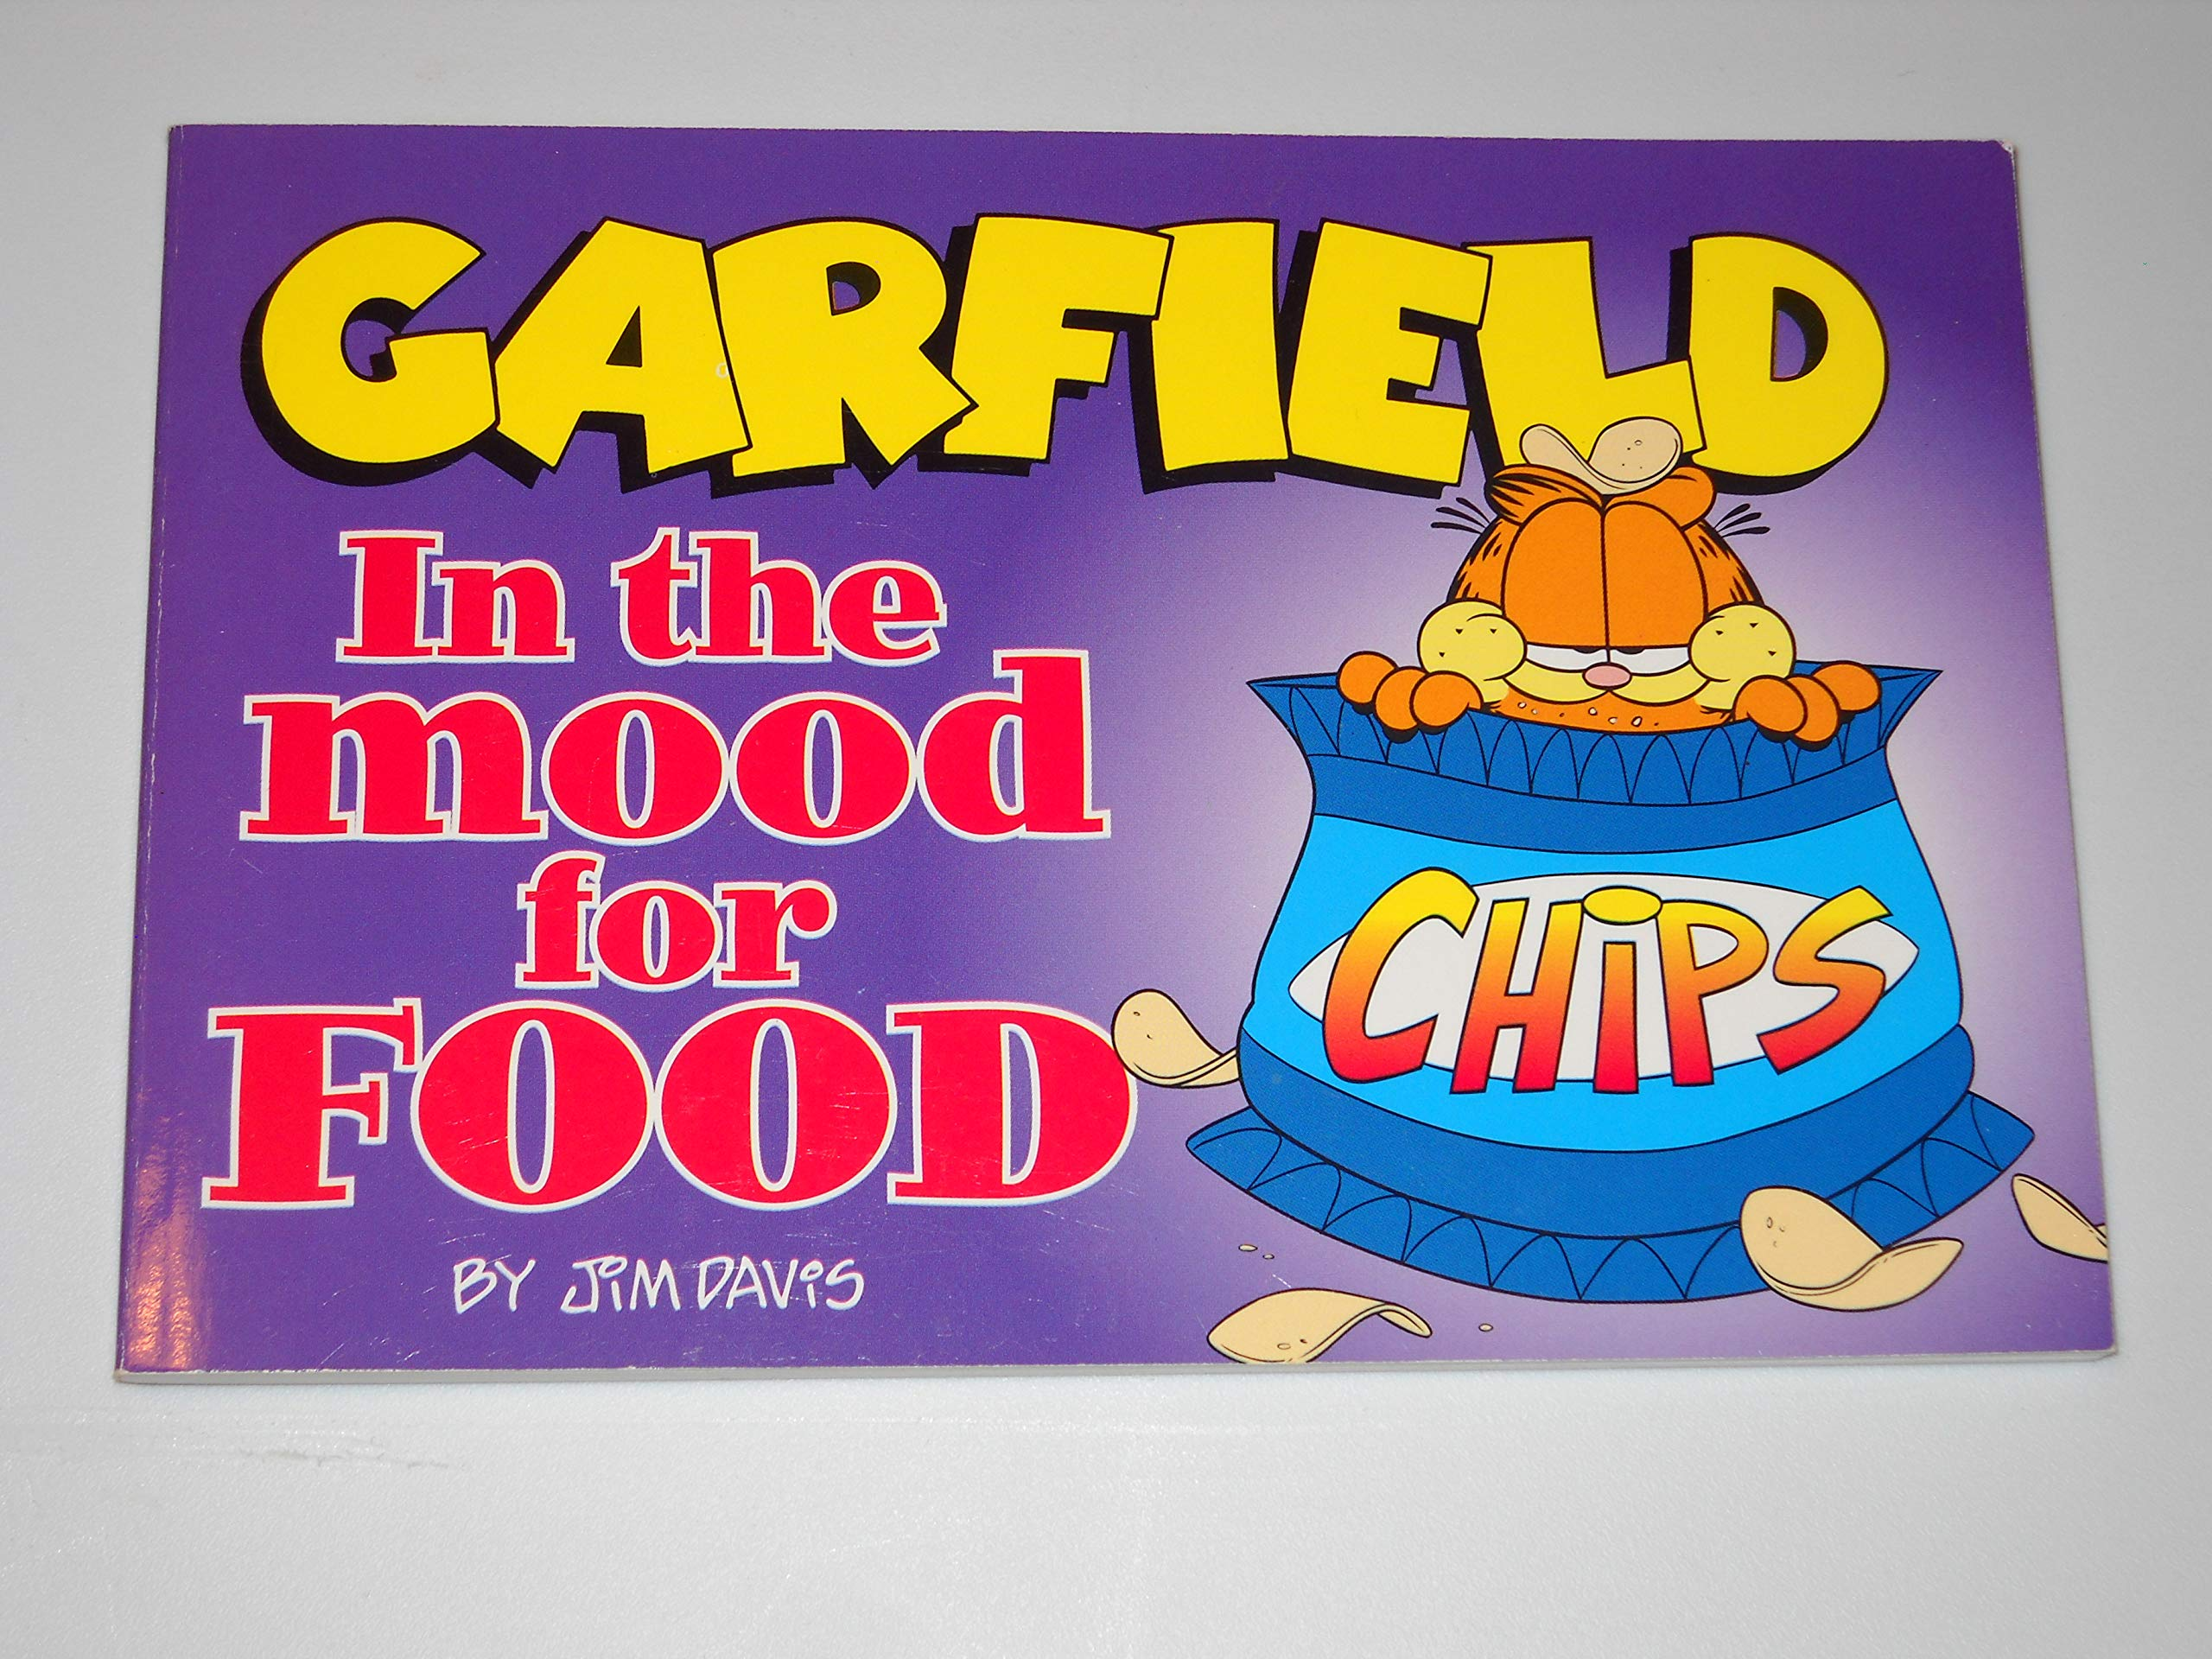 Garfield in the Mood for Food